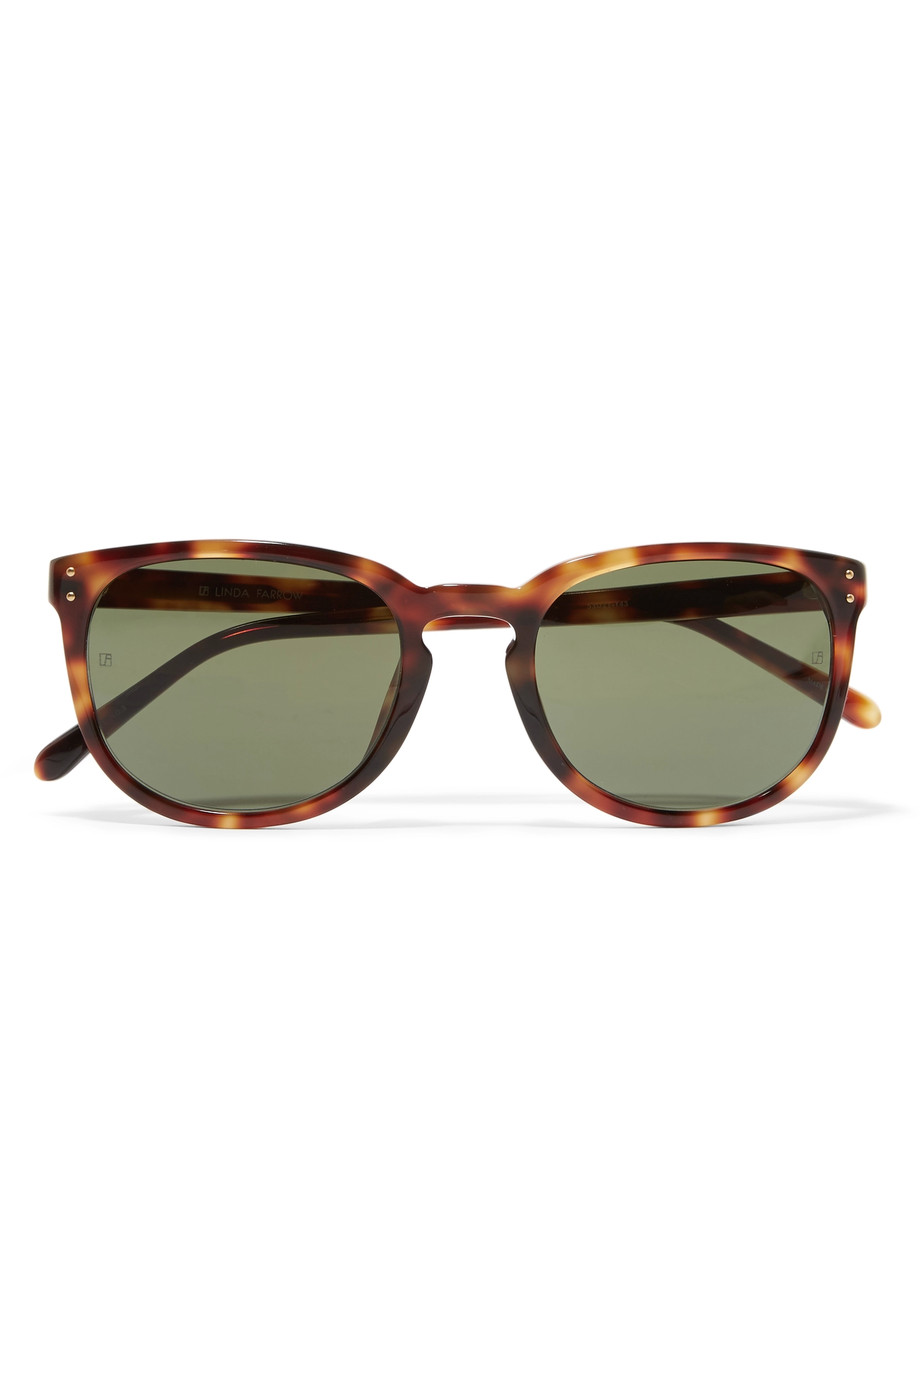 Linda Farrow Sunglasses | Linda Farrow Eyewear | Linda Farrow Rose Gold